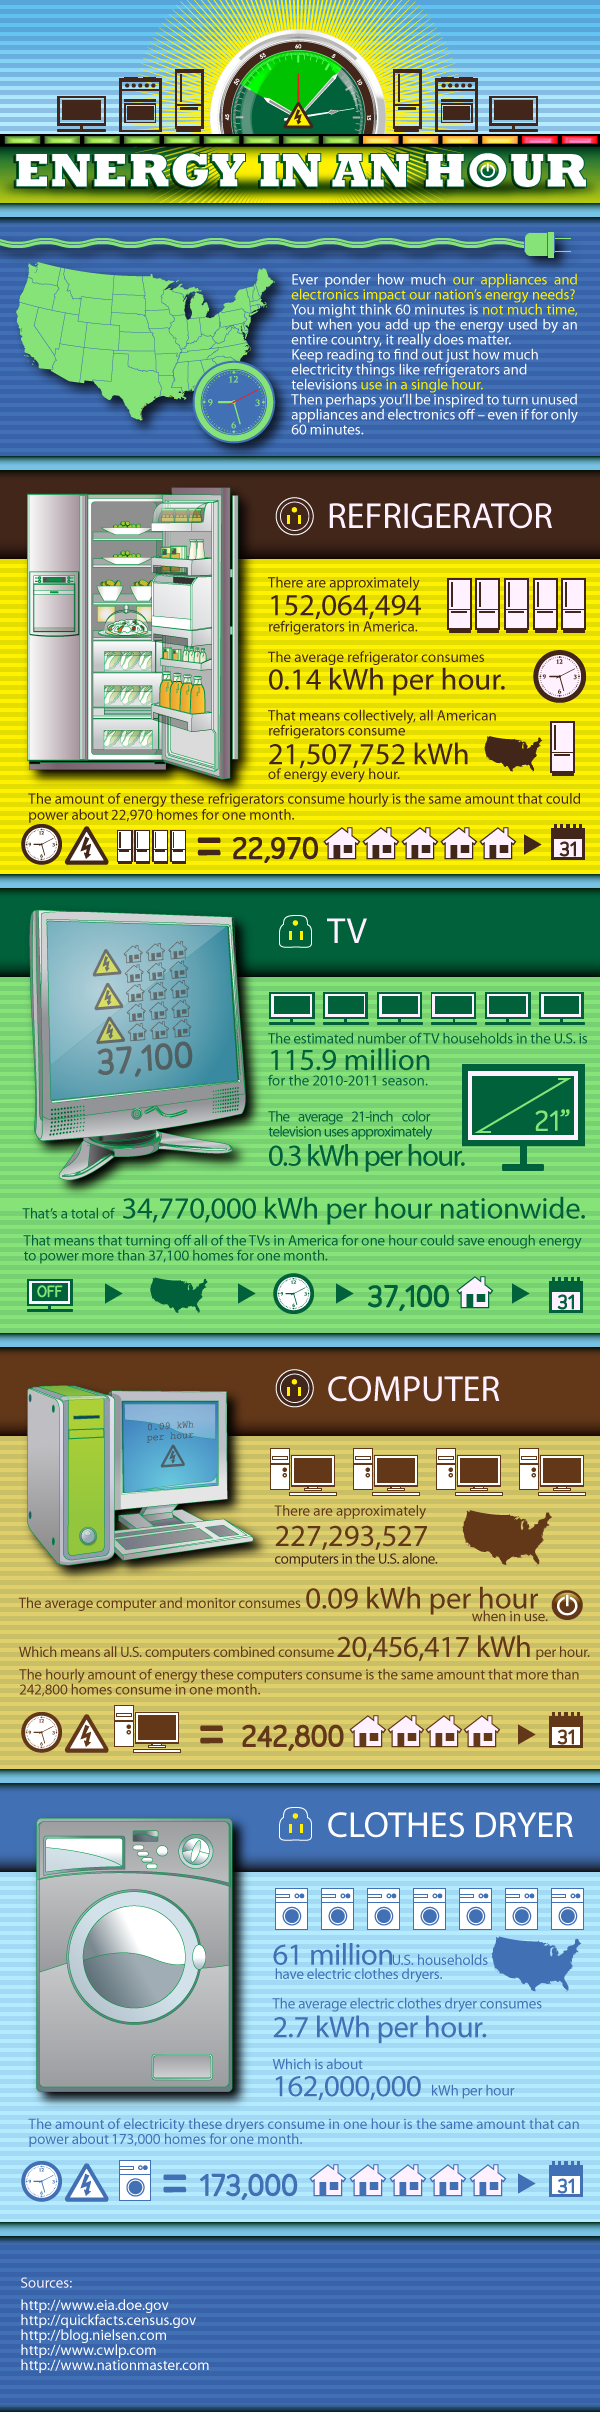 energy-in-an-hour-infographic